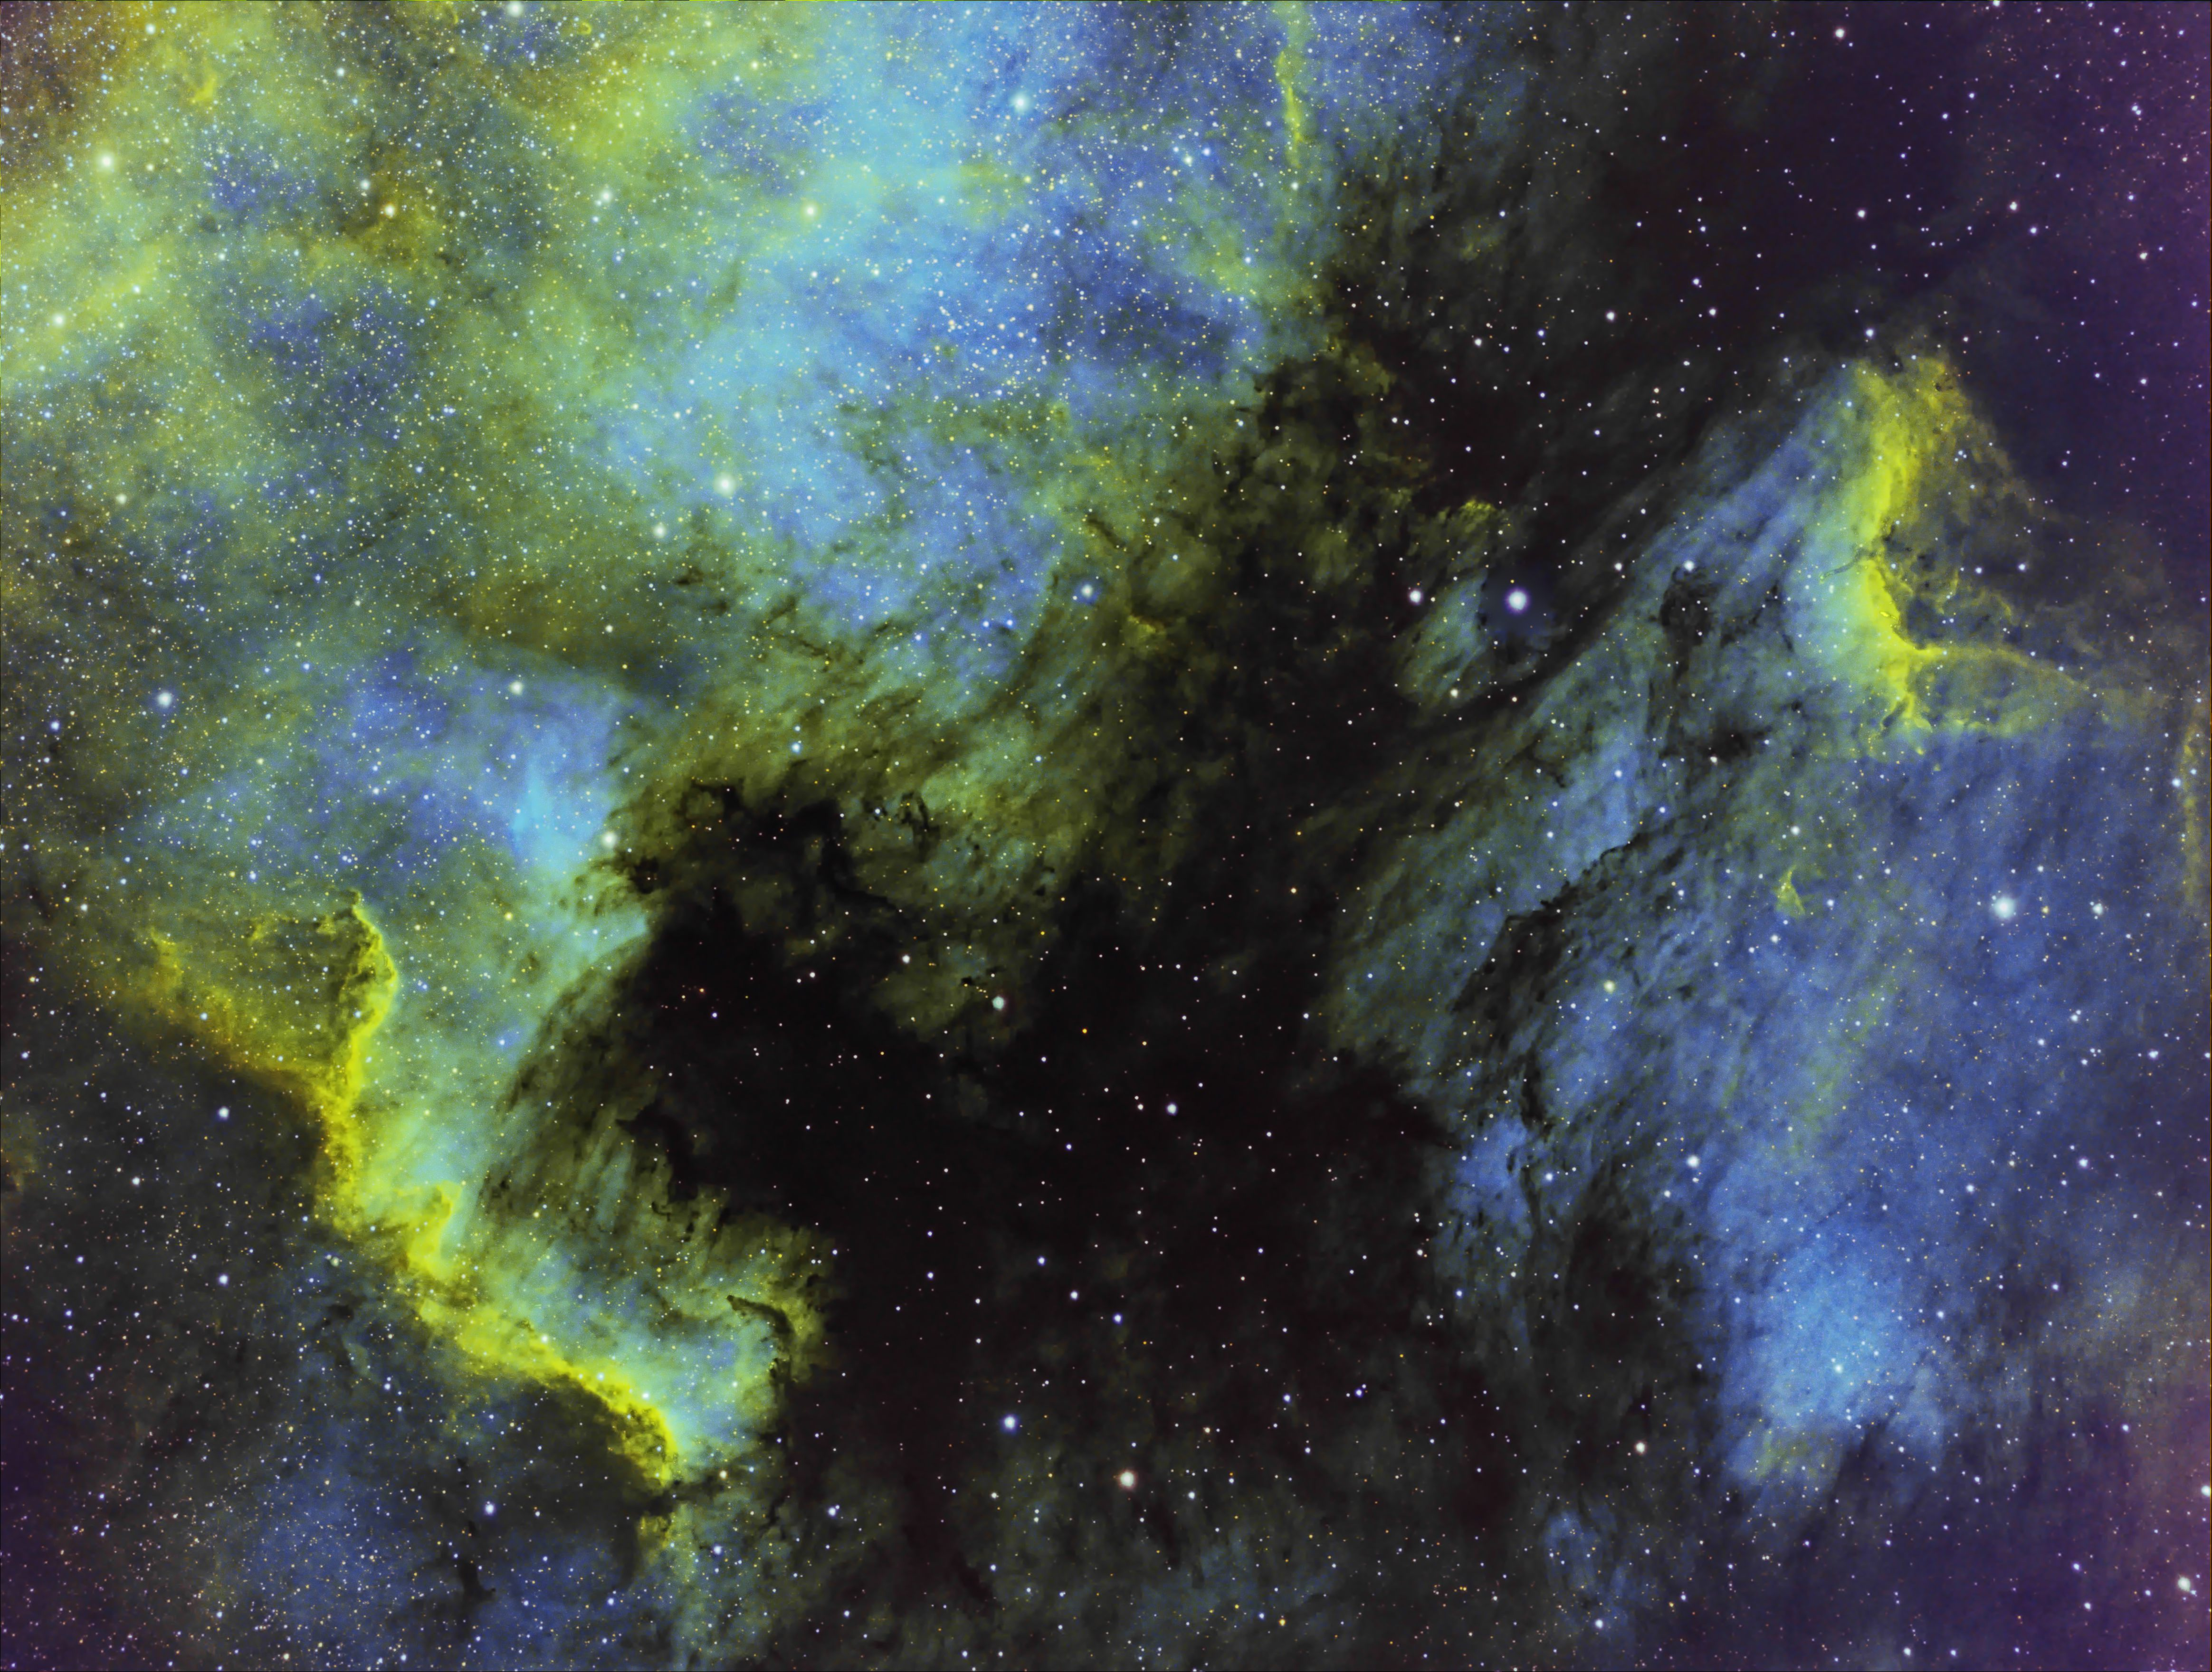 North American and Pelican Nebulas in narrowband HSO, Hubble Pallette.